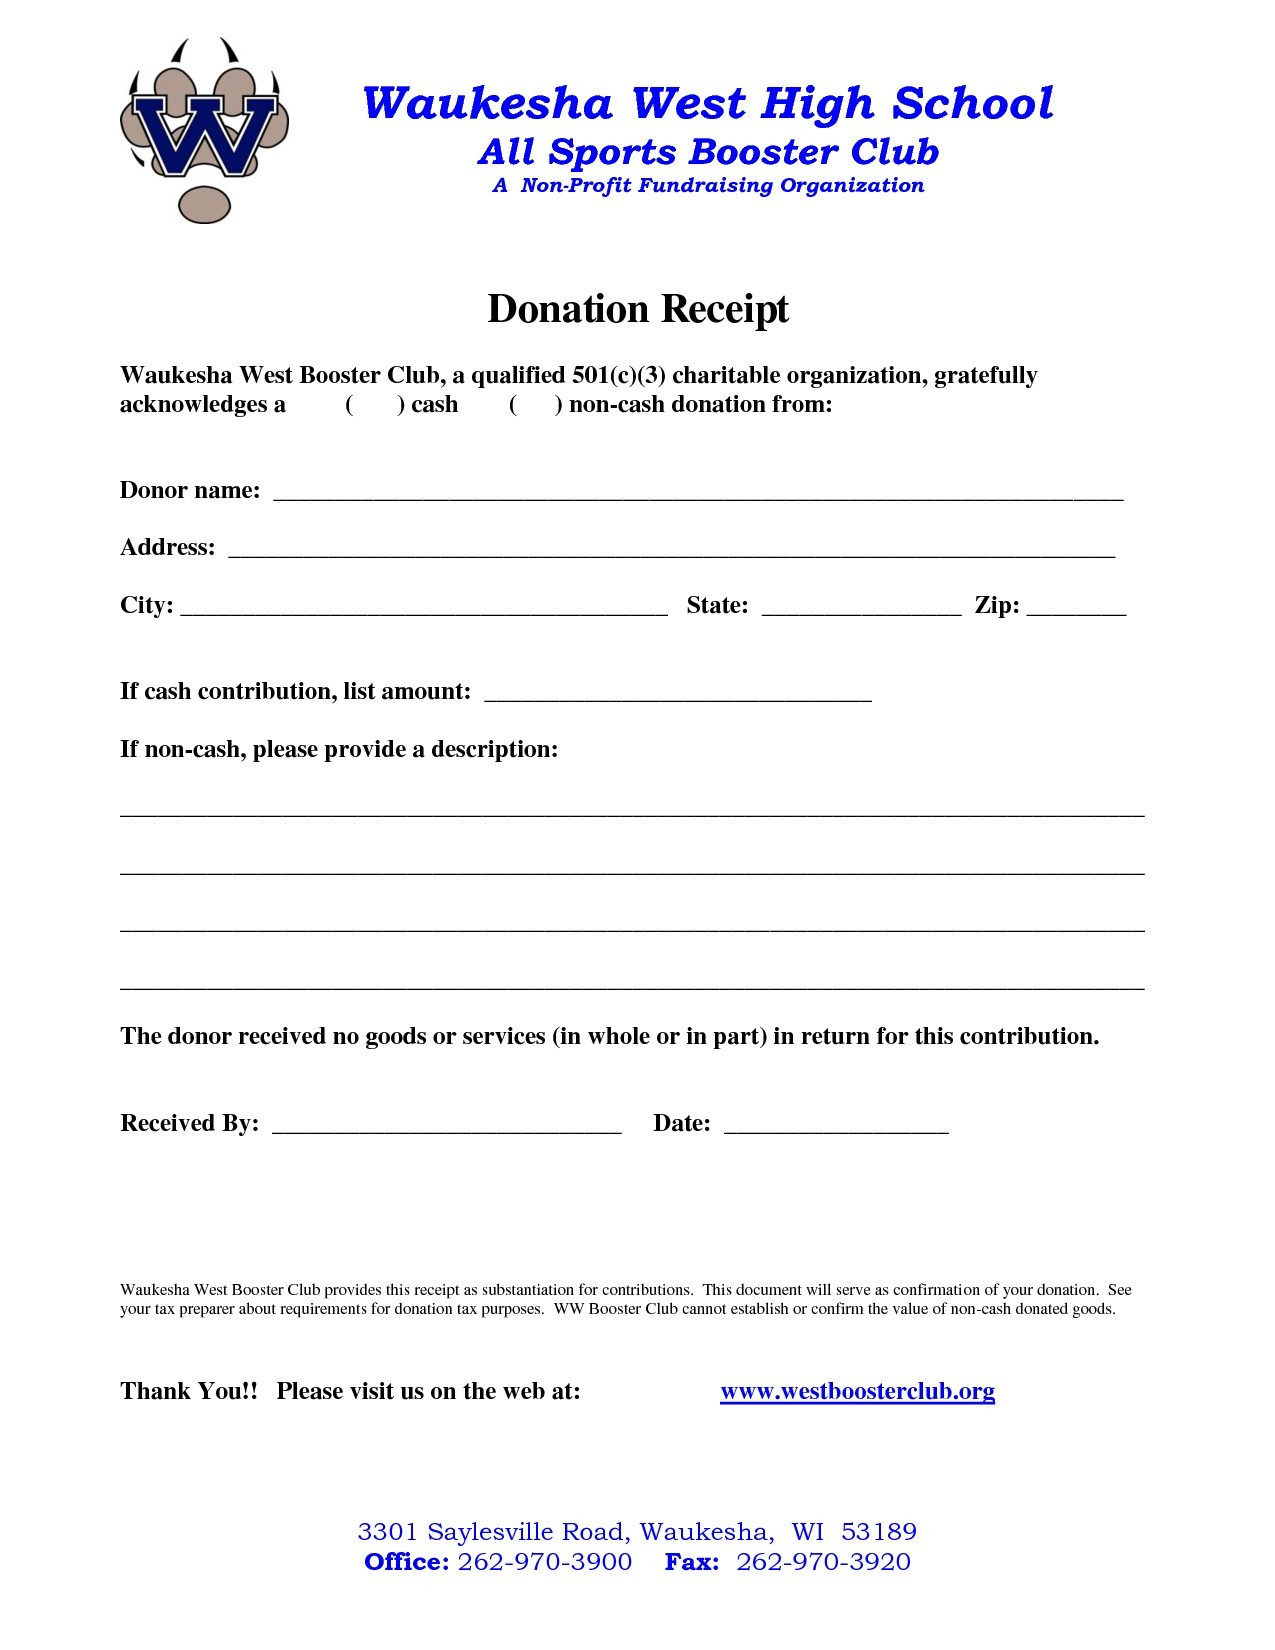 charitable donation receipt letter template example-Awesome Non Profit Donation Receipt Template 3-e